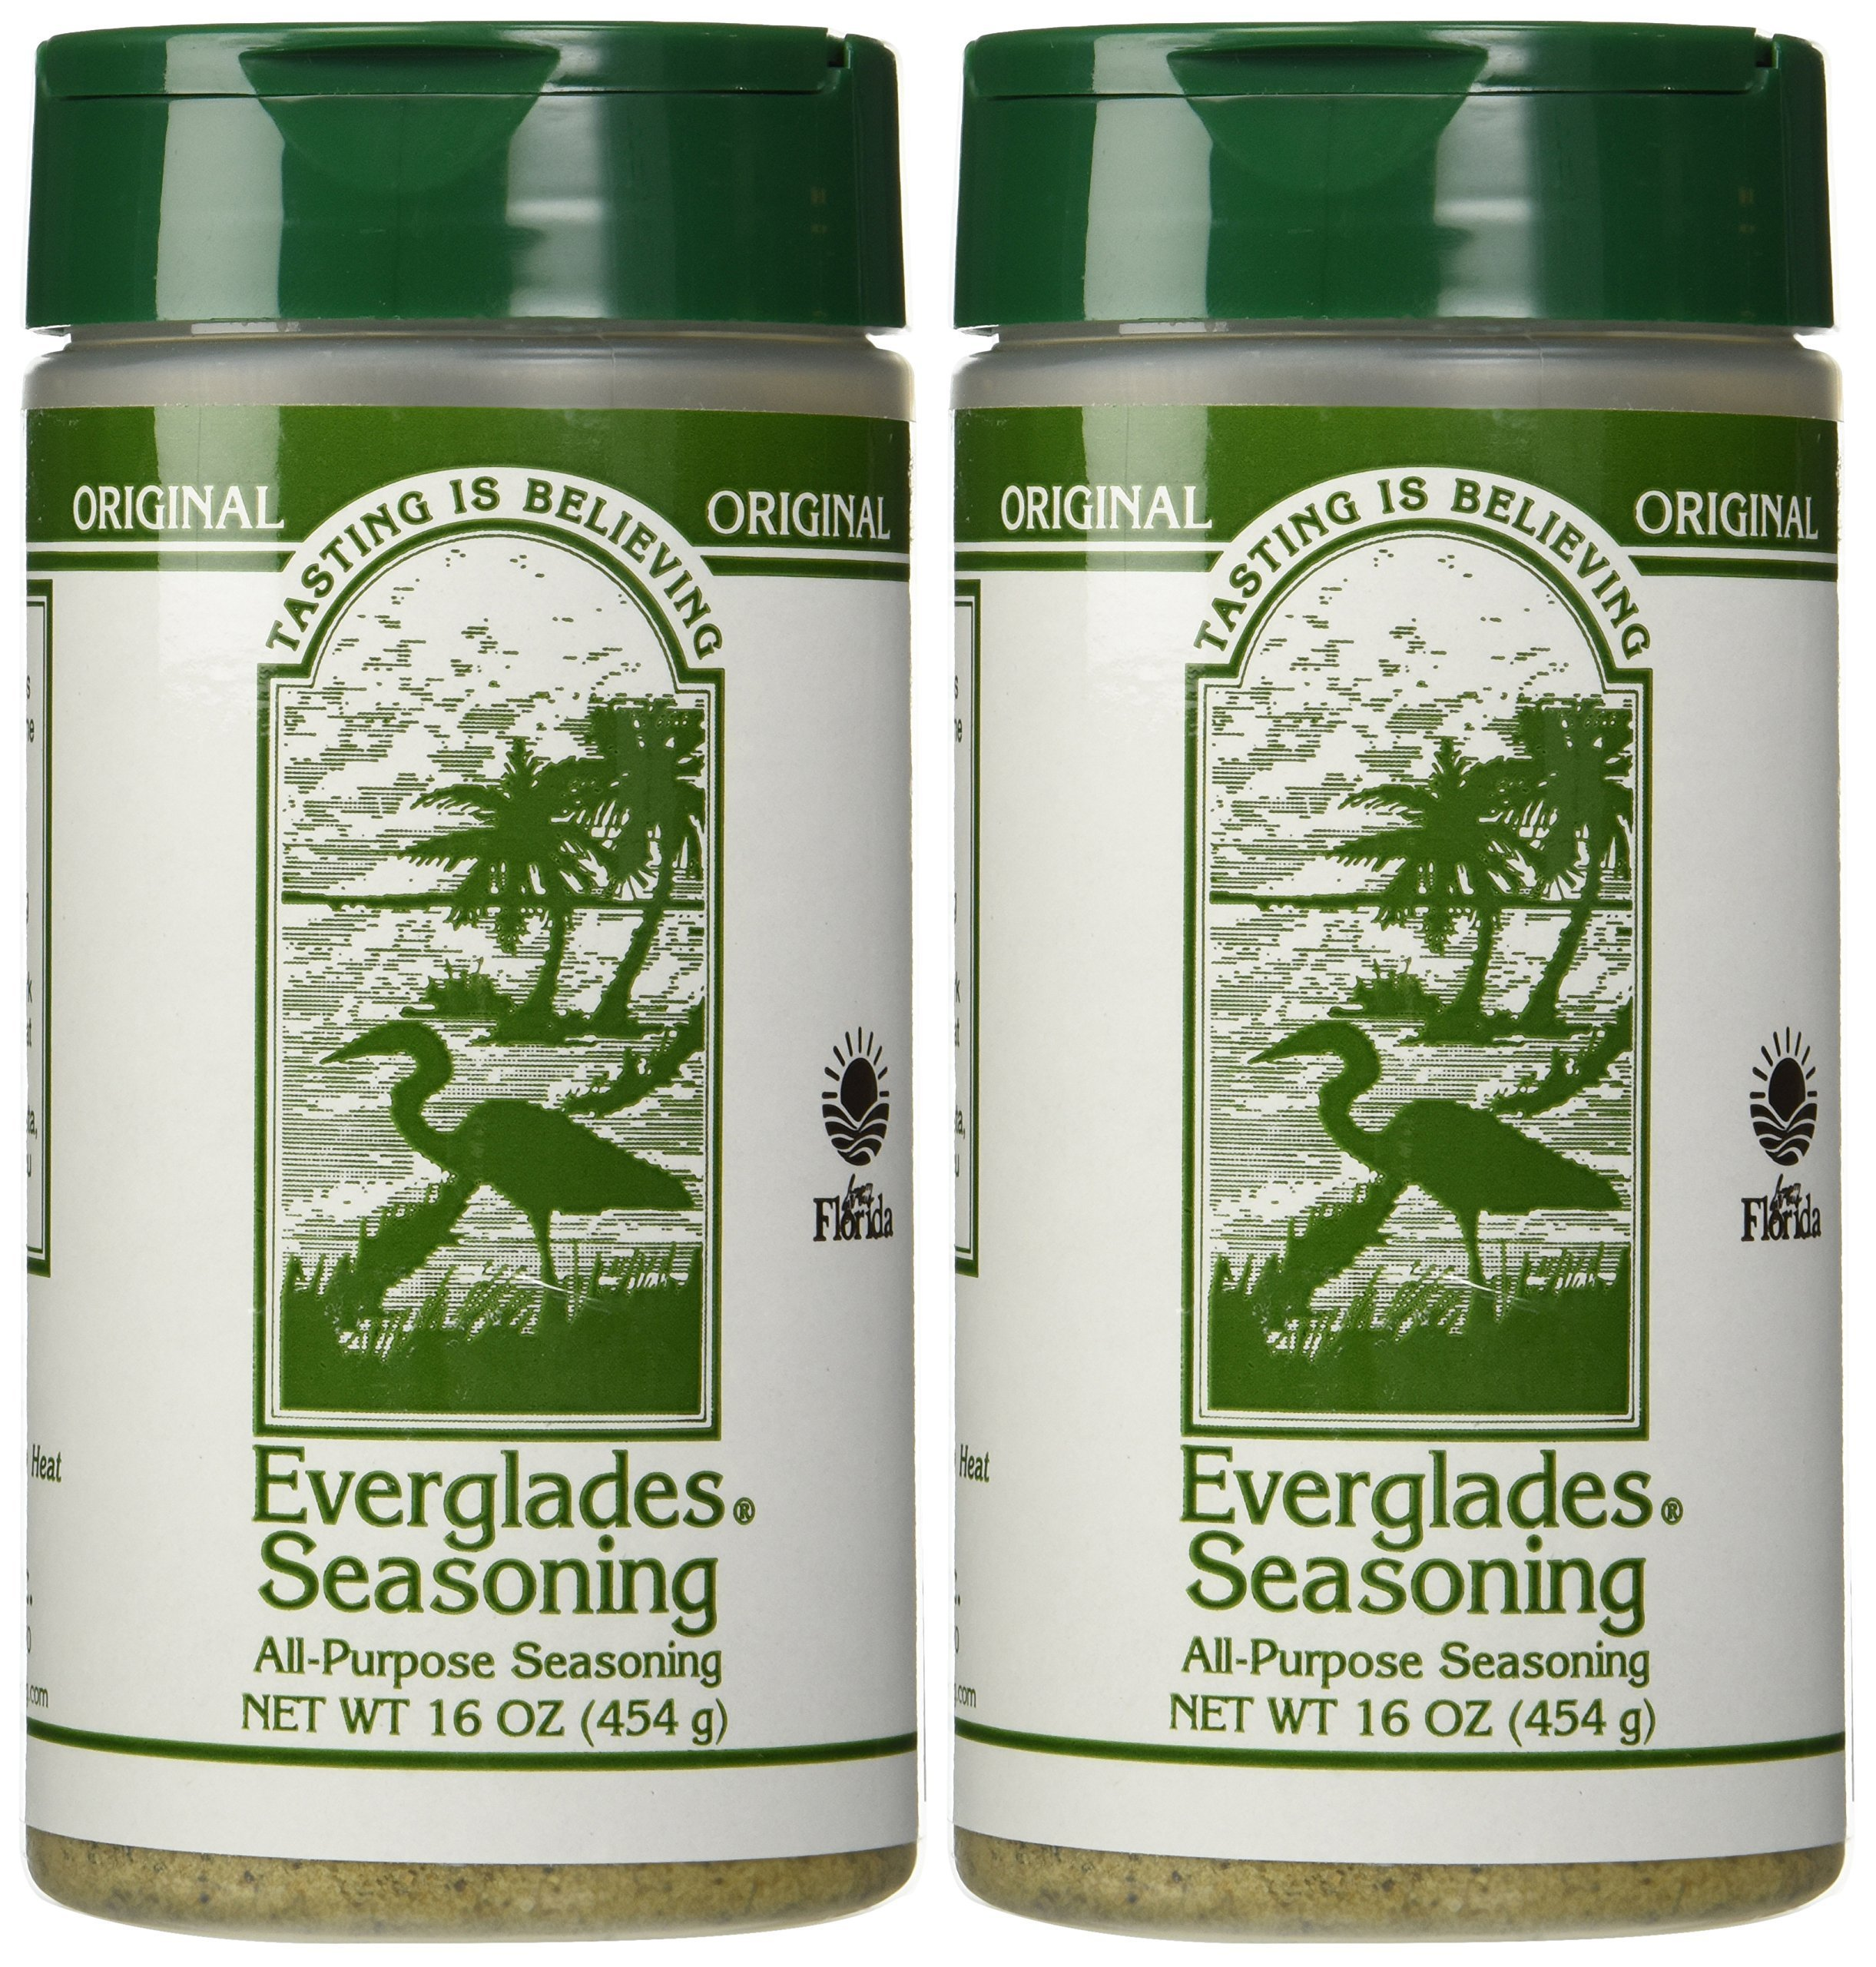 Everglades Seasoning, 16 oz, Case Pack of 2